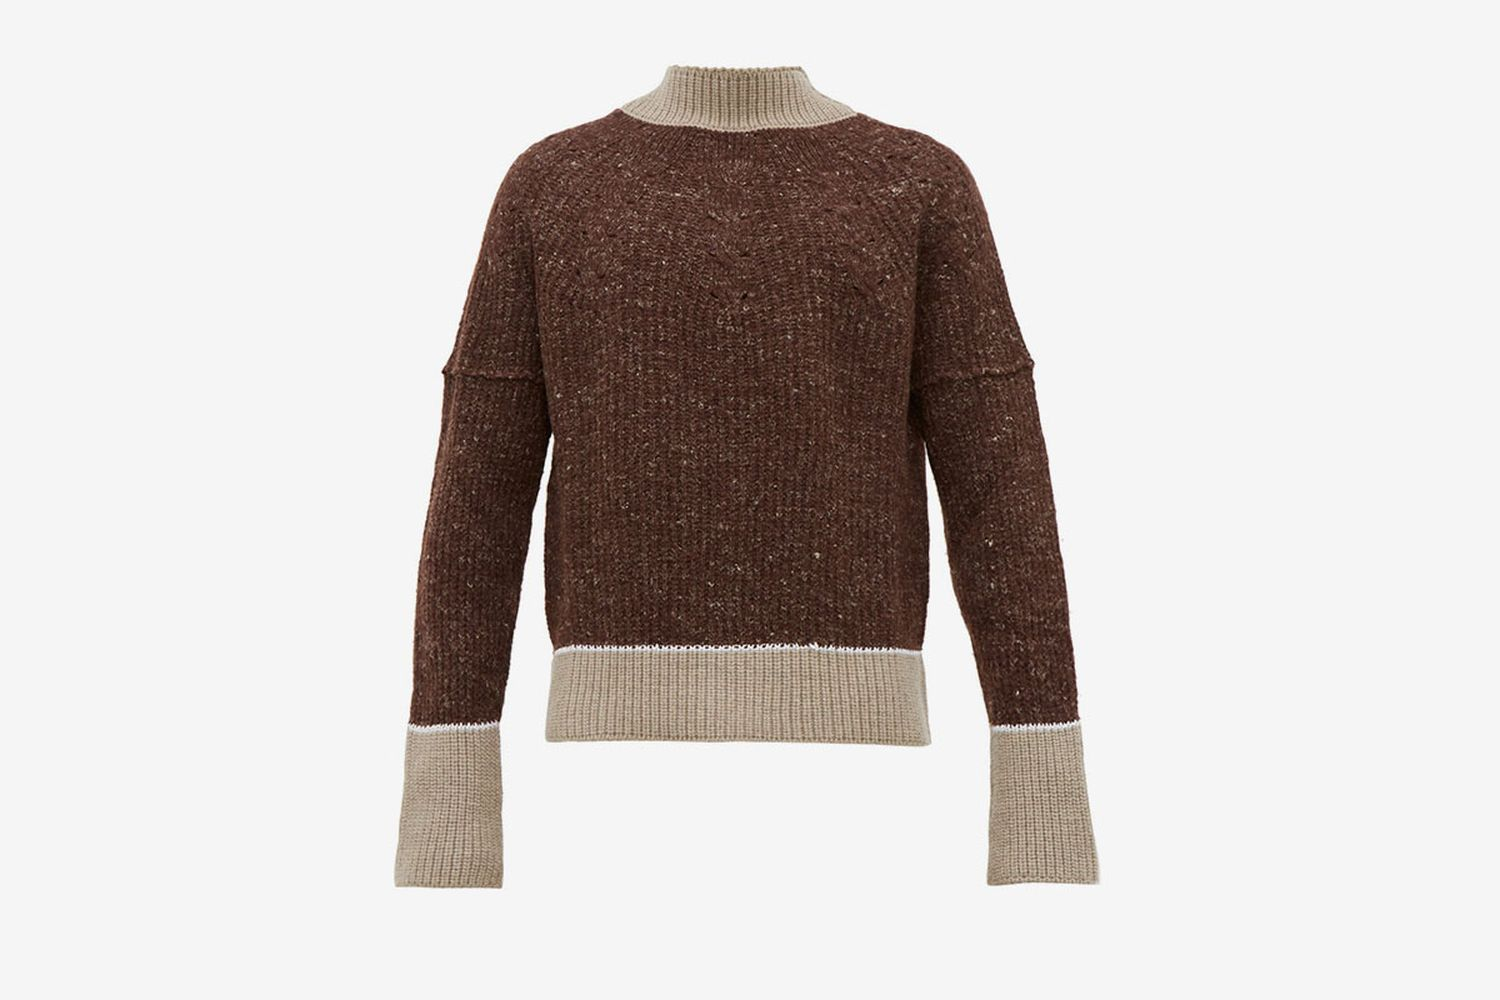 Pierre Deconstructed Merino Wool Sweater